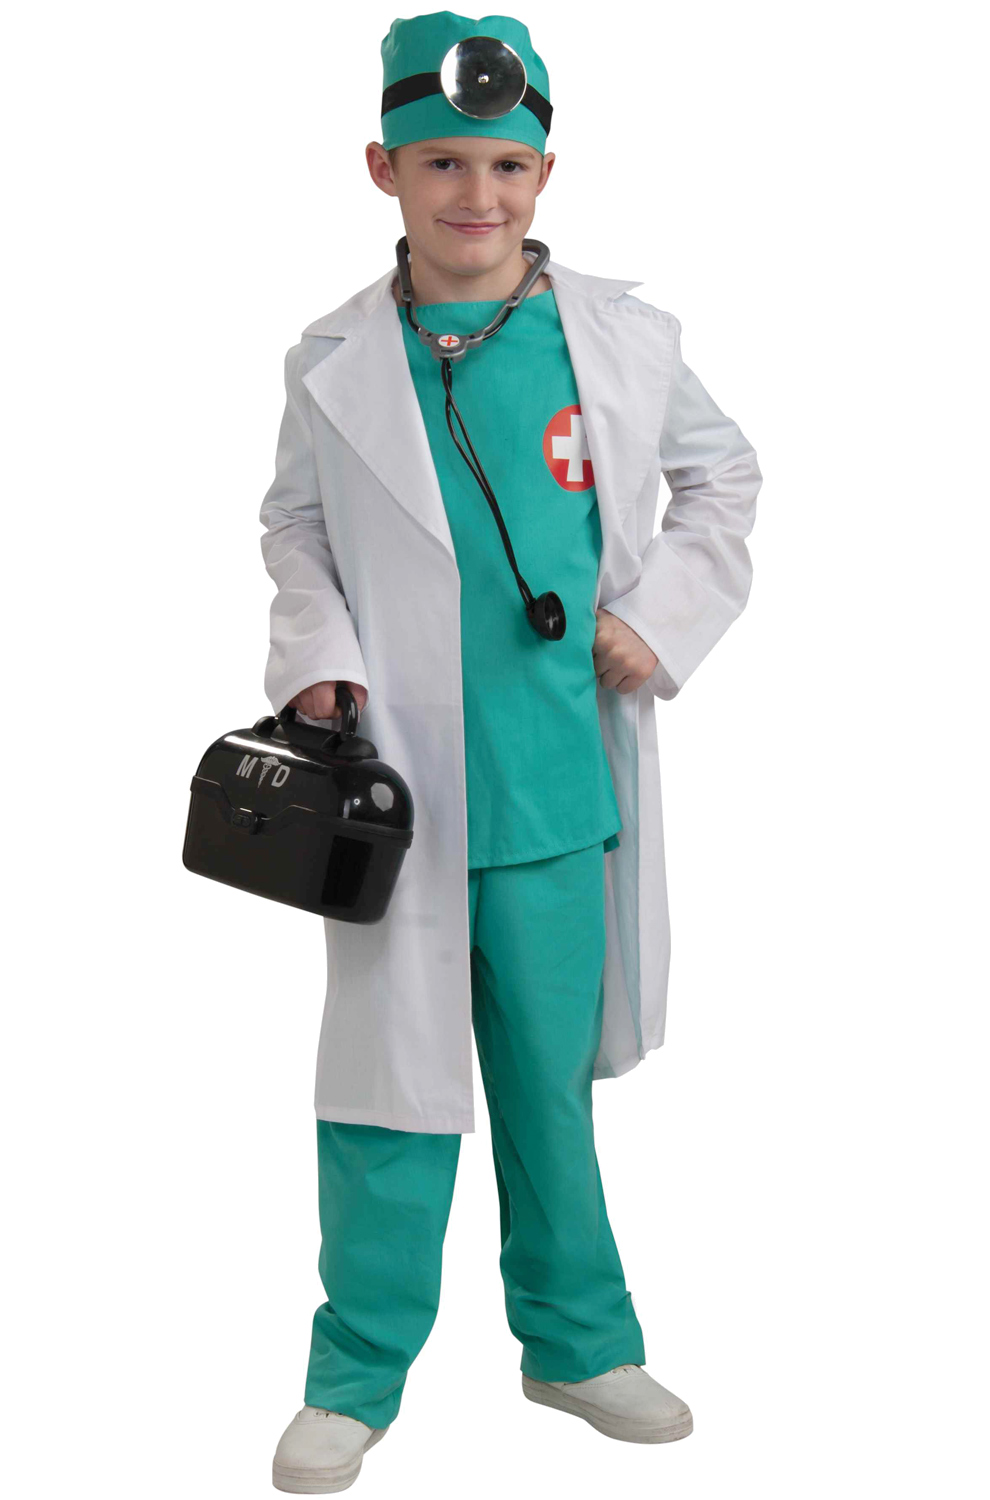 Chief Surgeon Child Costume (S)  sc 1 st  eBay & Brand New Head Chief Surgeon Medical Doctor Child Costume (S ...